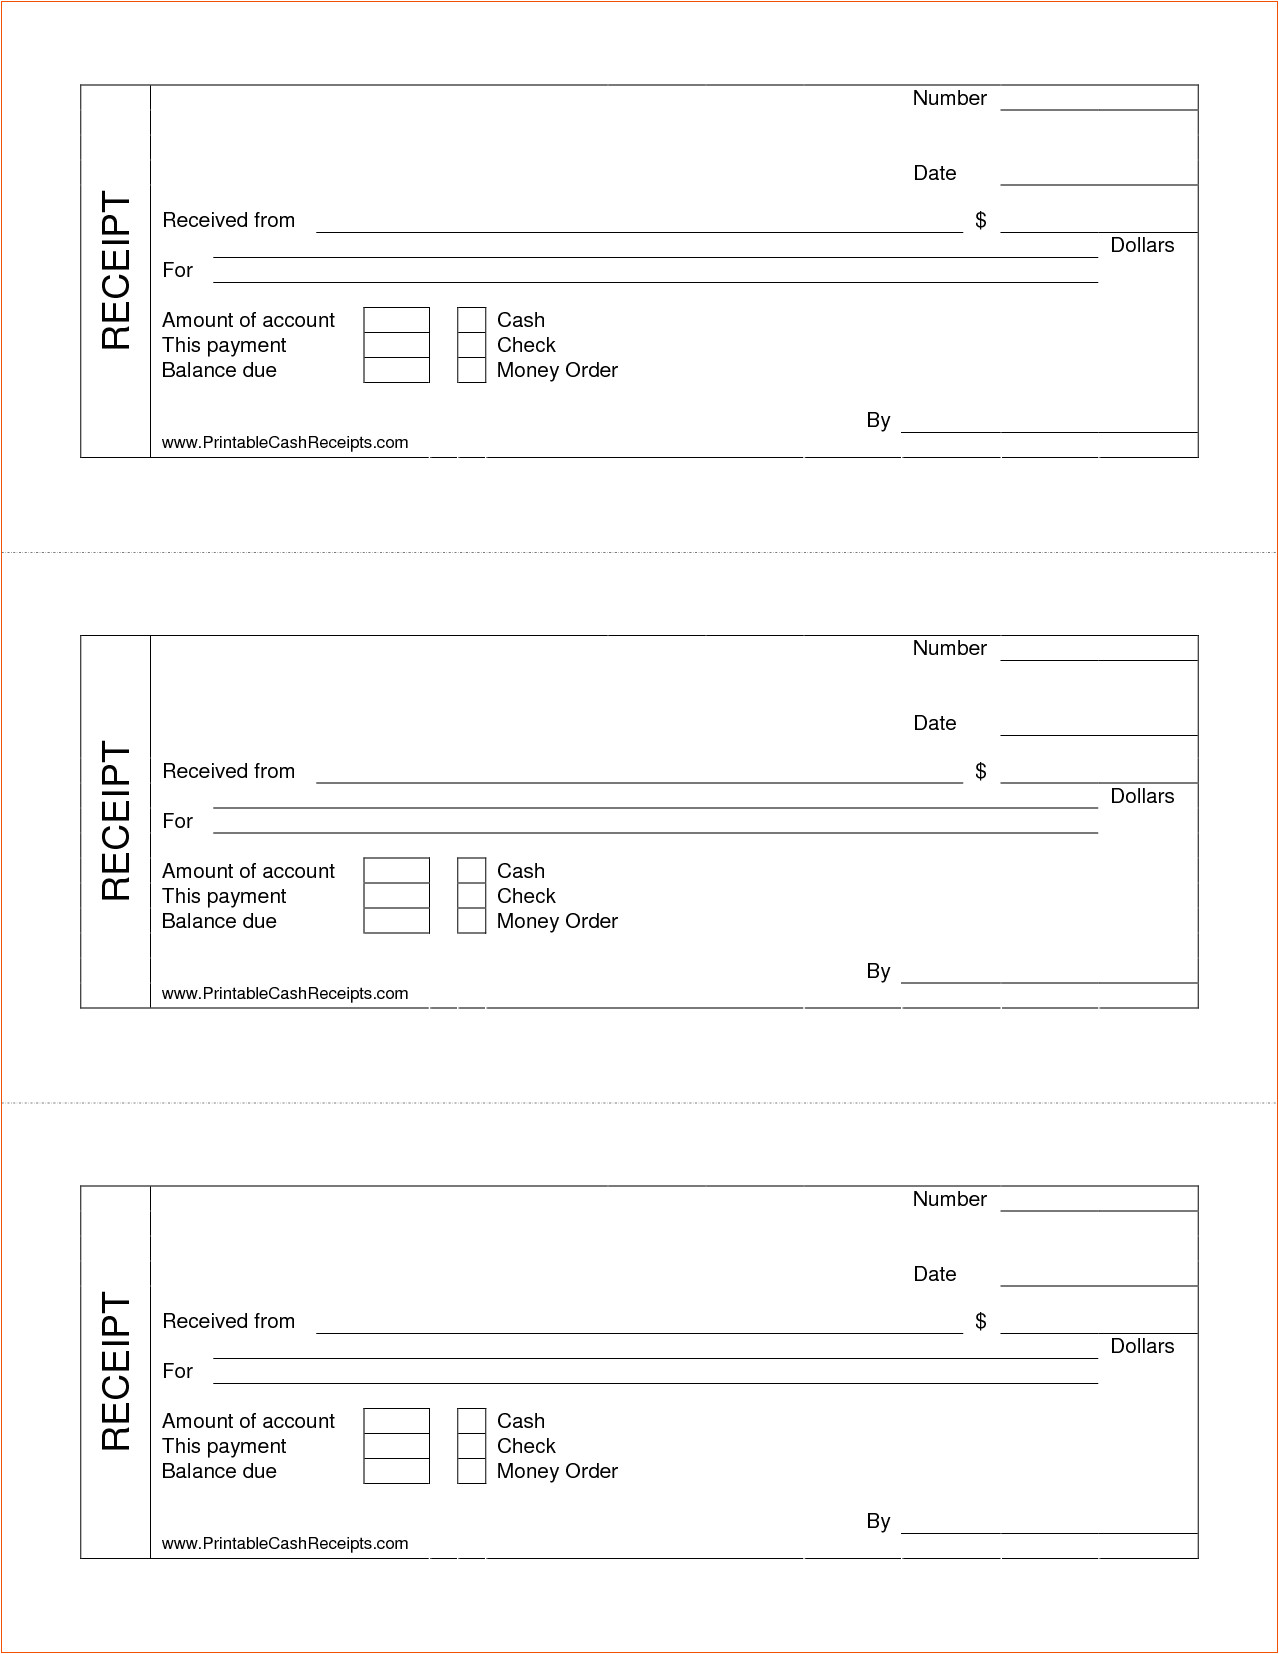 7 printable cash receipt